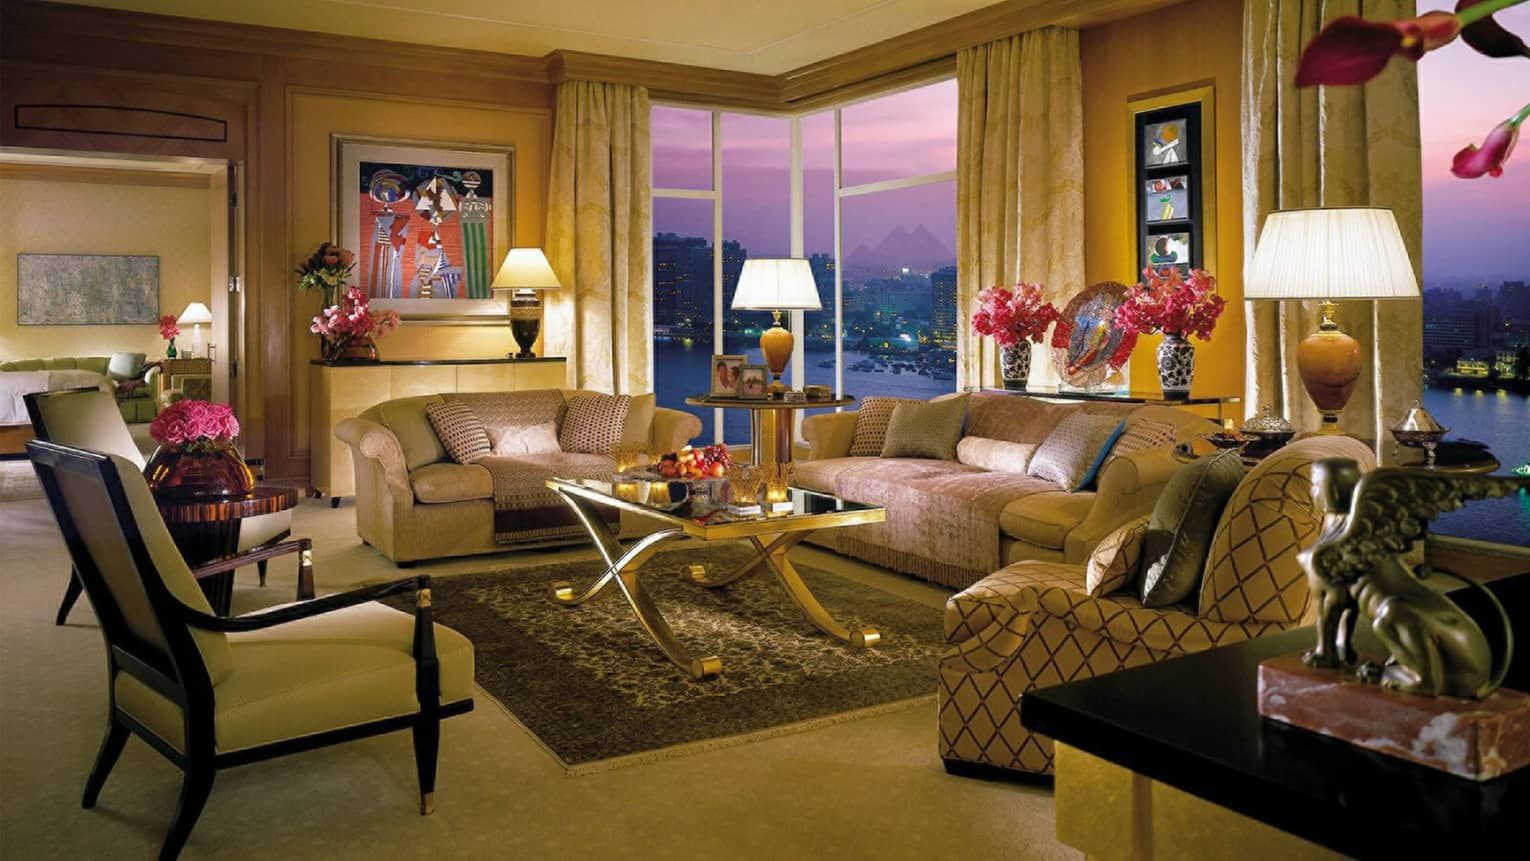 Royal Suite large living room at night, with two plush sofas and three armchairs, modern art and gold accents